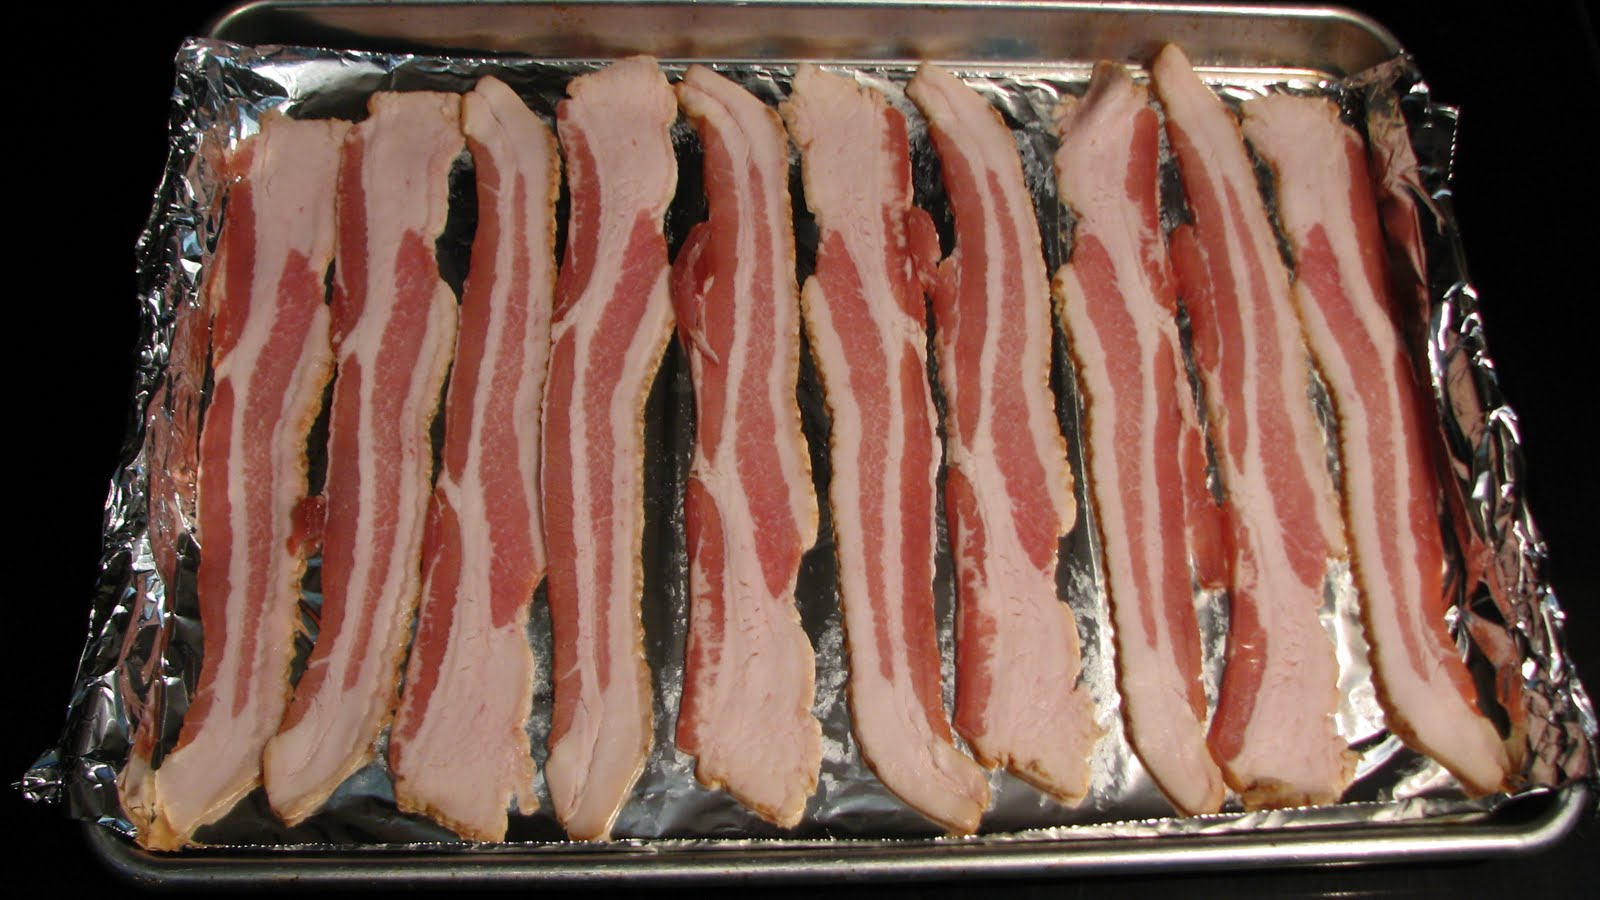 Place The Baking Sheet In The Cold Oven Set The Oven To 425 Degrees And  Allow The Bacon To Cook While It Heats When Our Oven Reaches 425 Degrees,